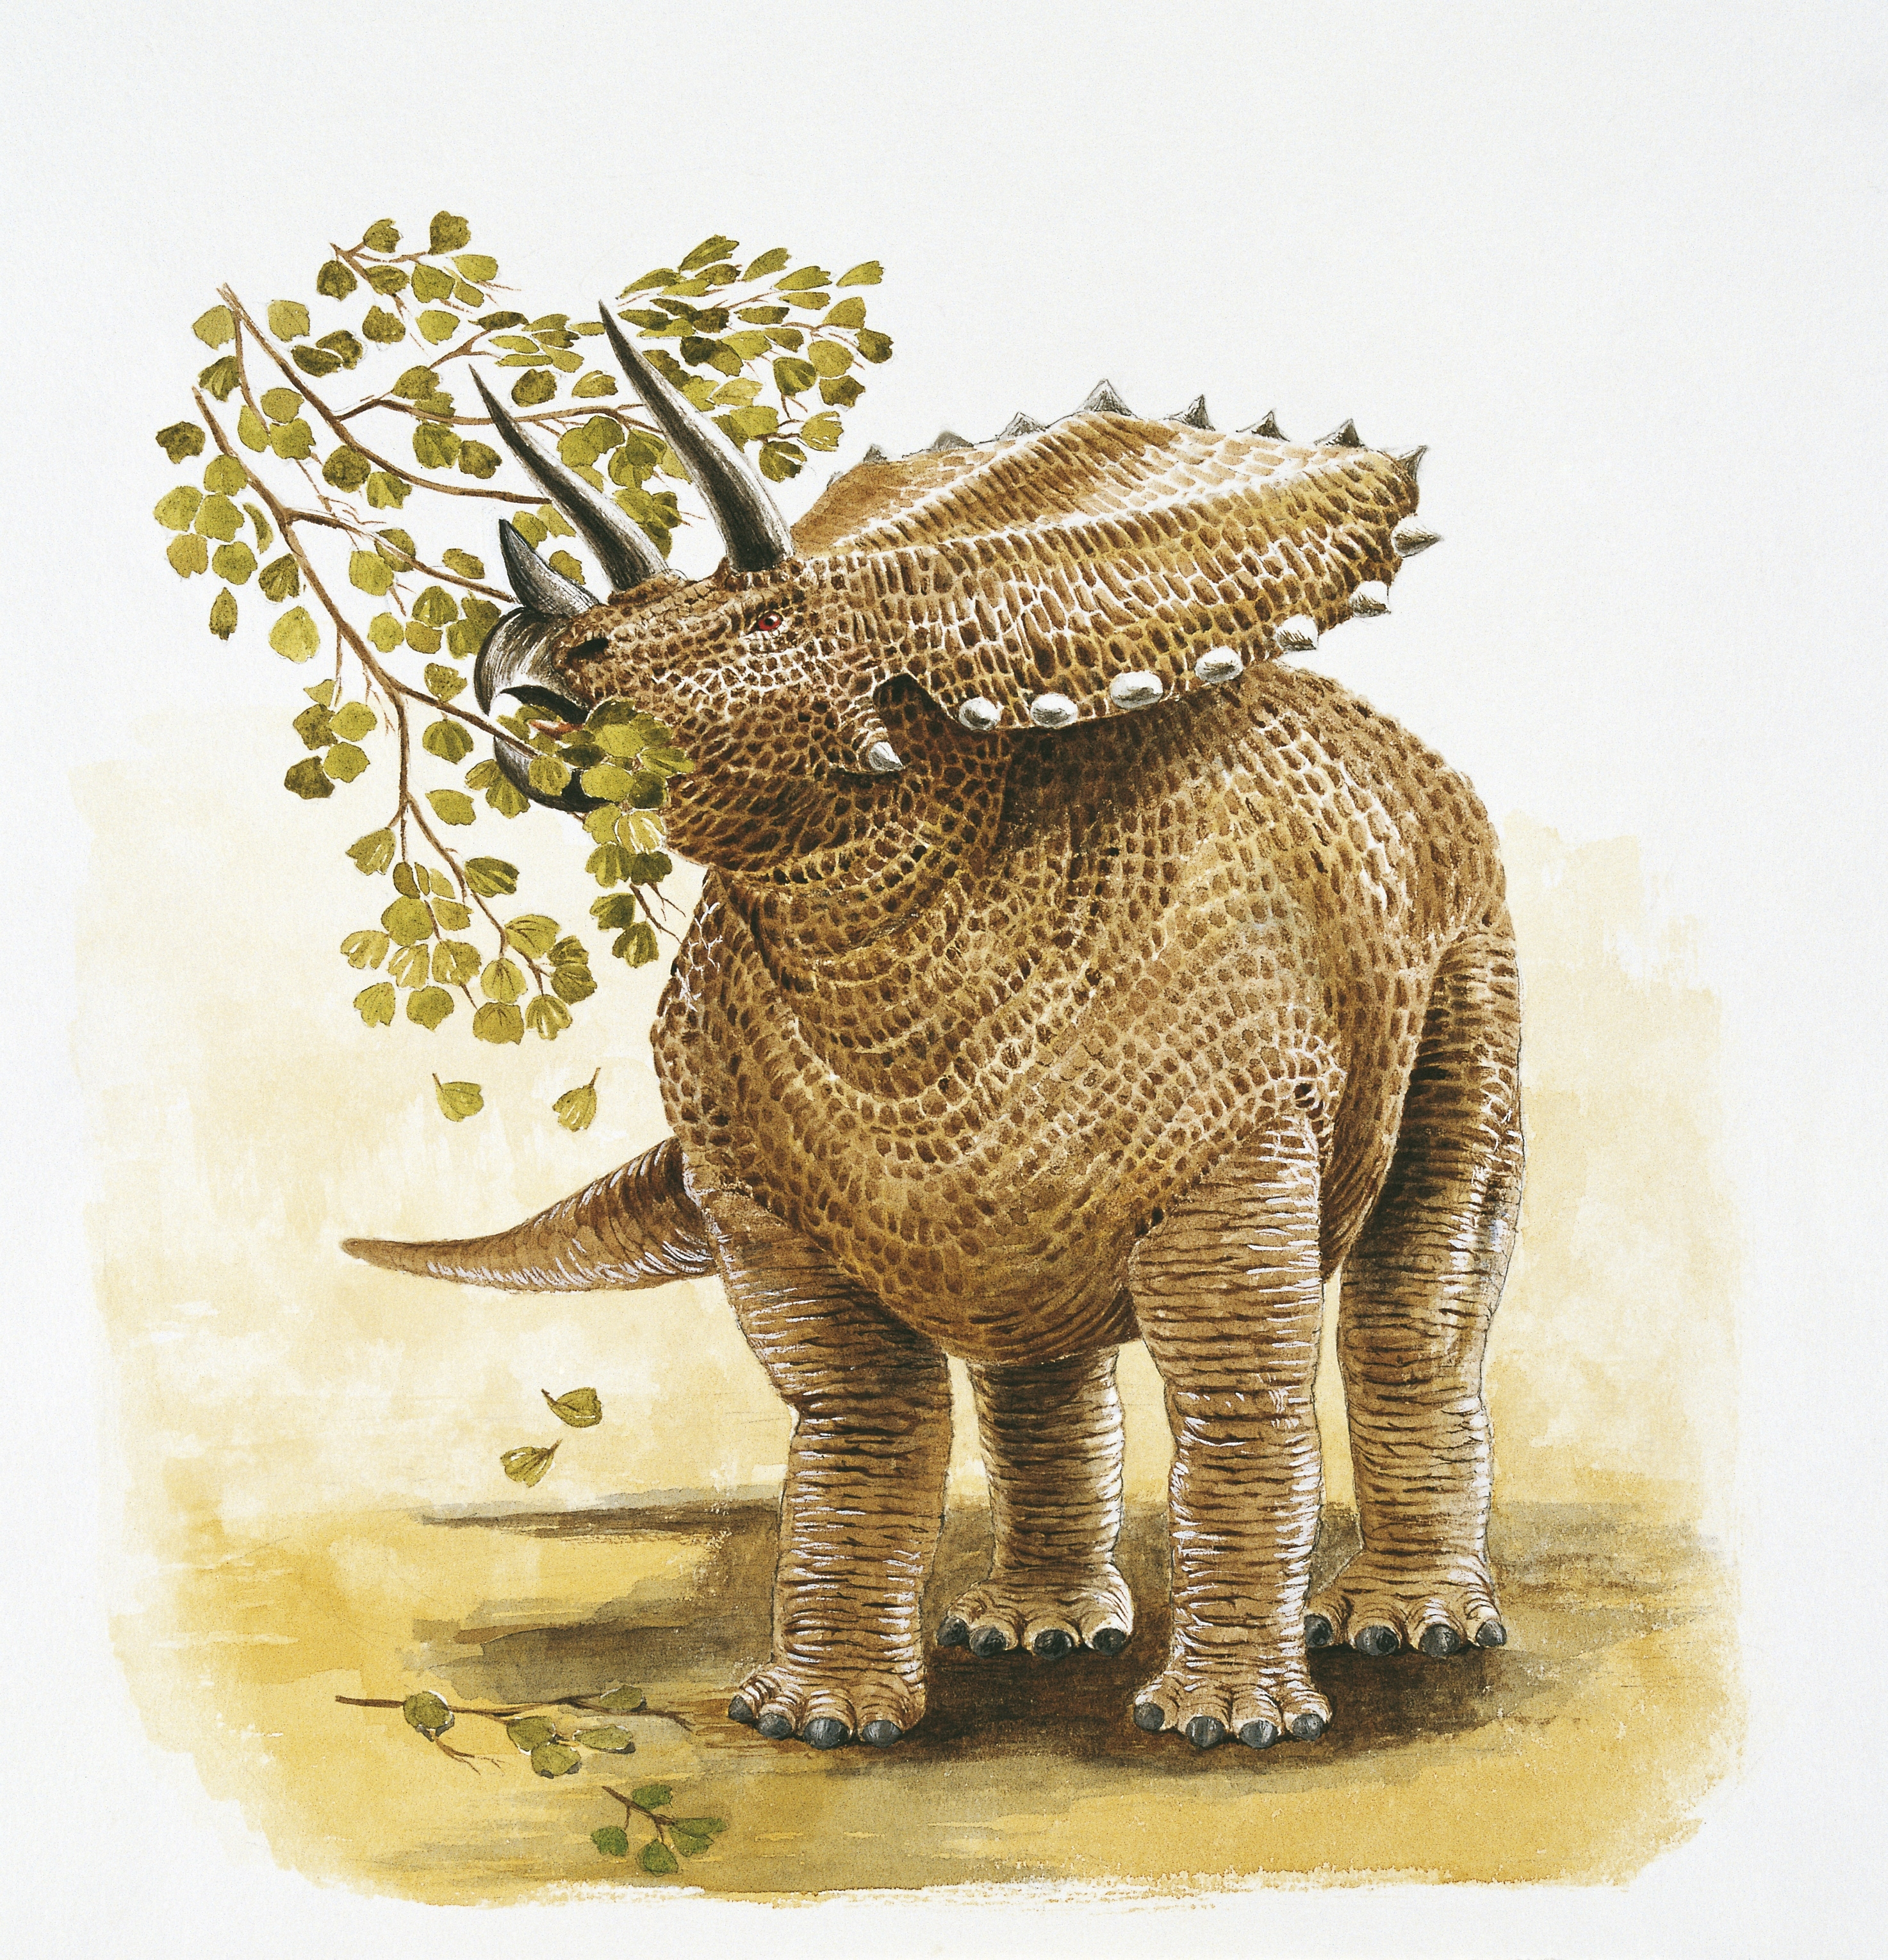 Illustration of Pentaceratops eating branch leaves